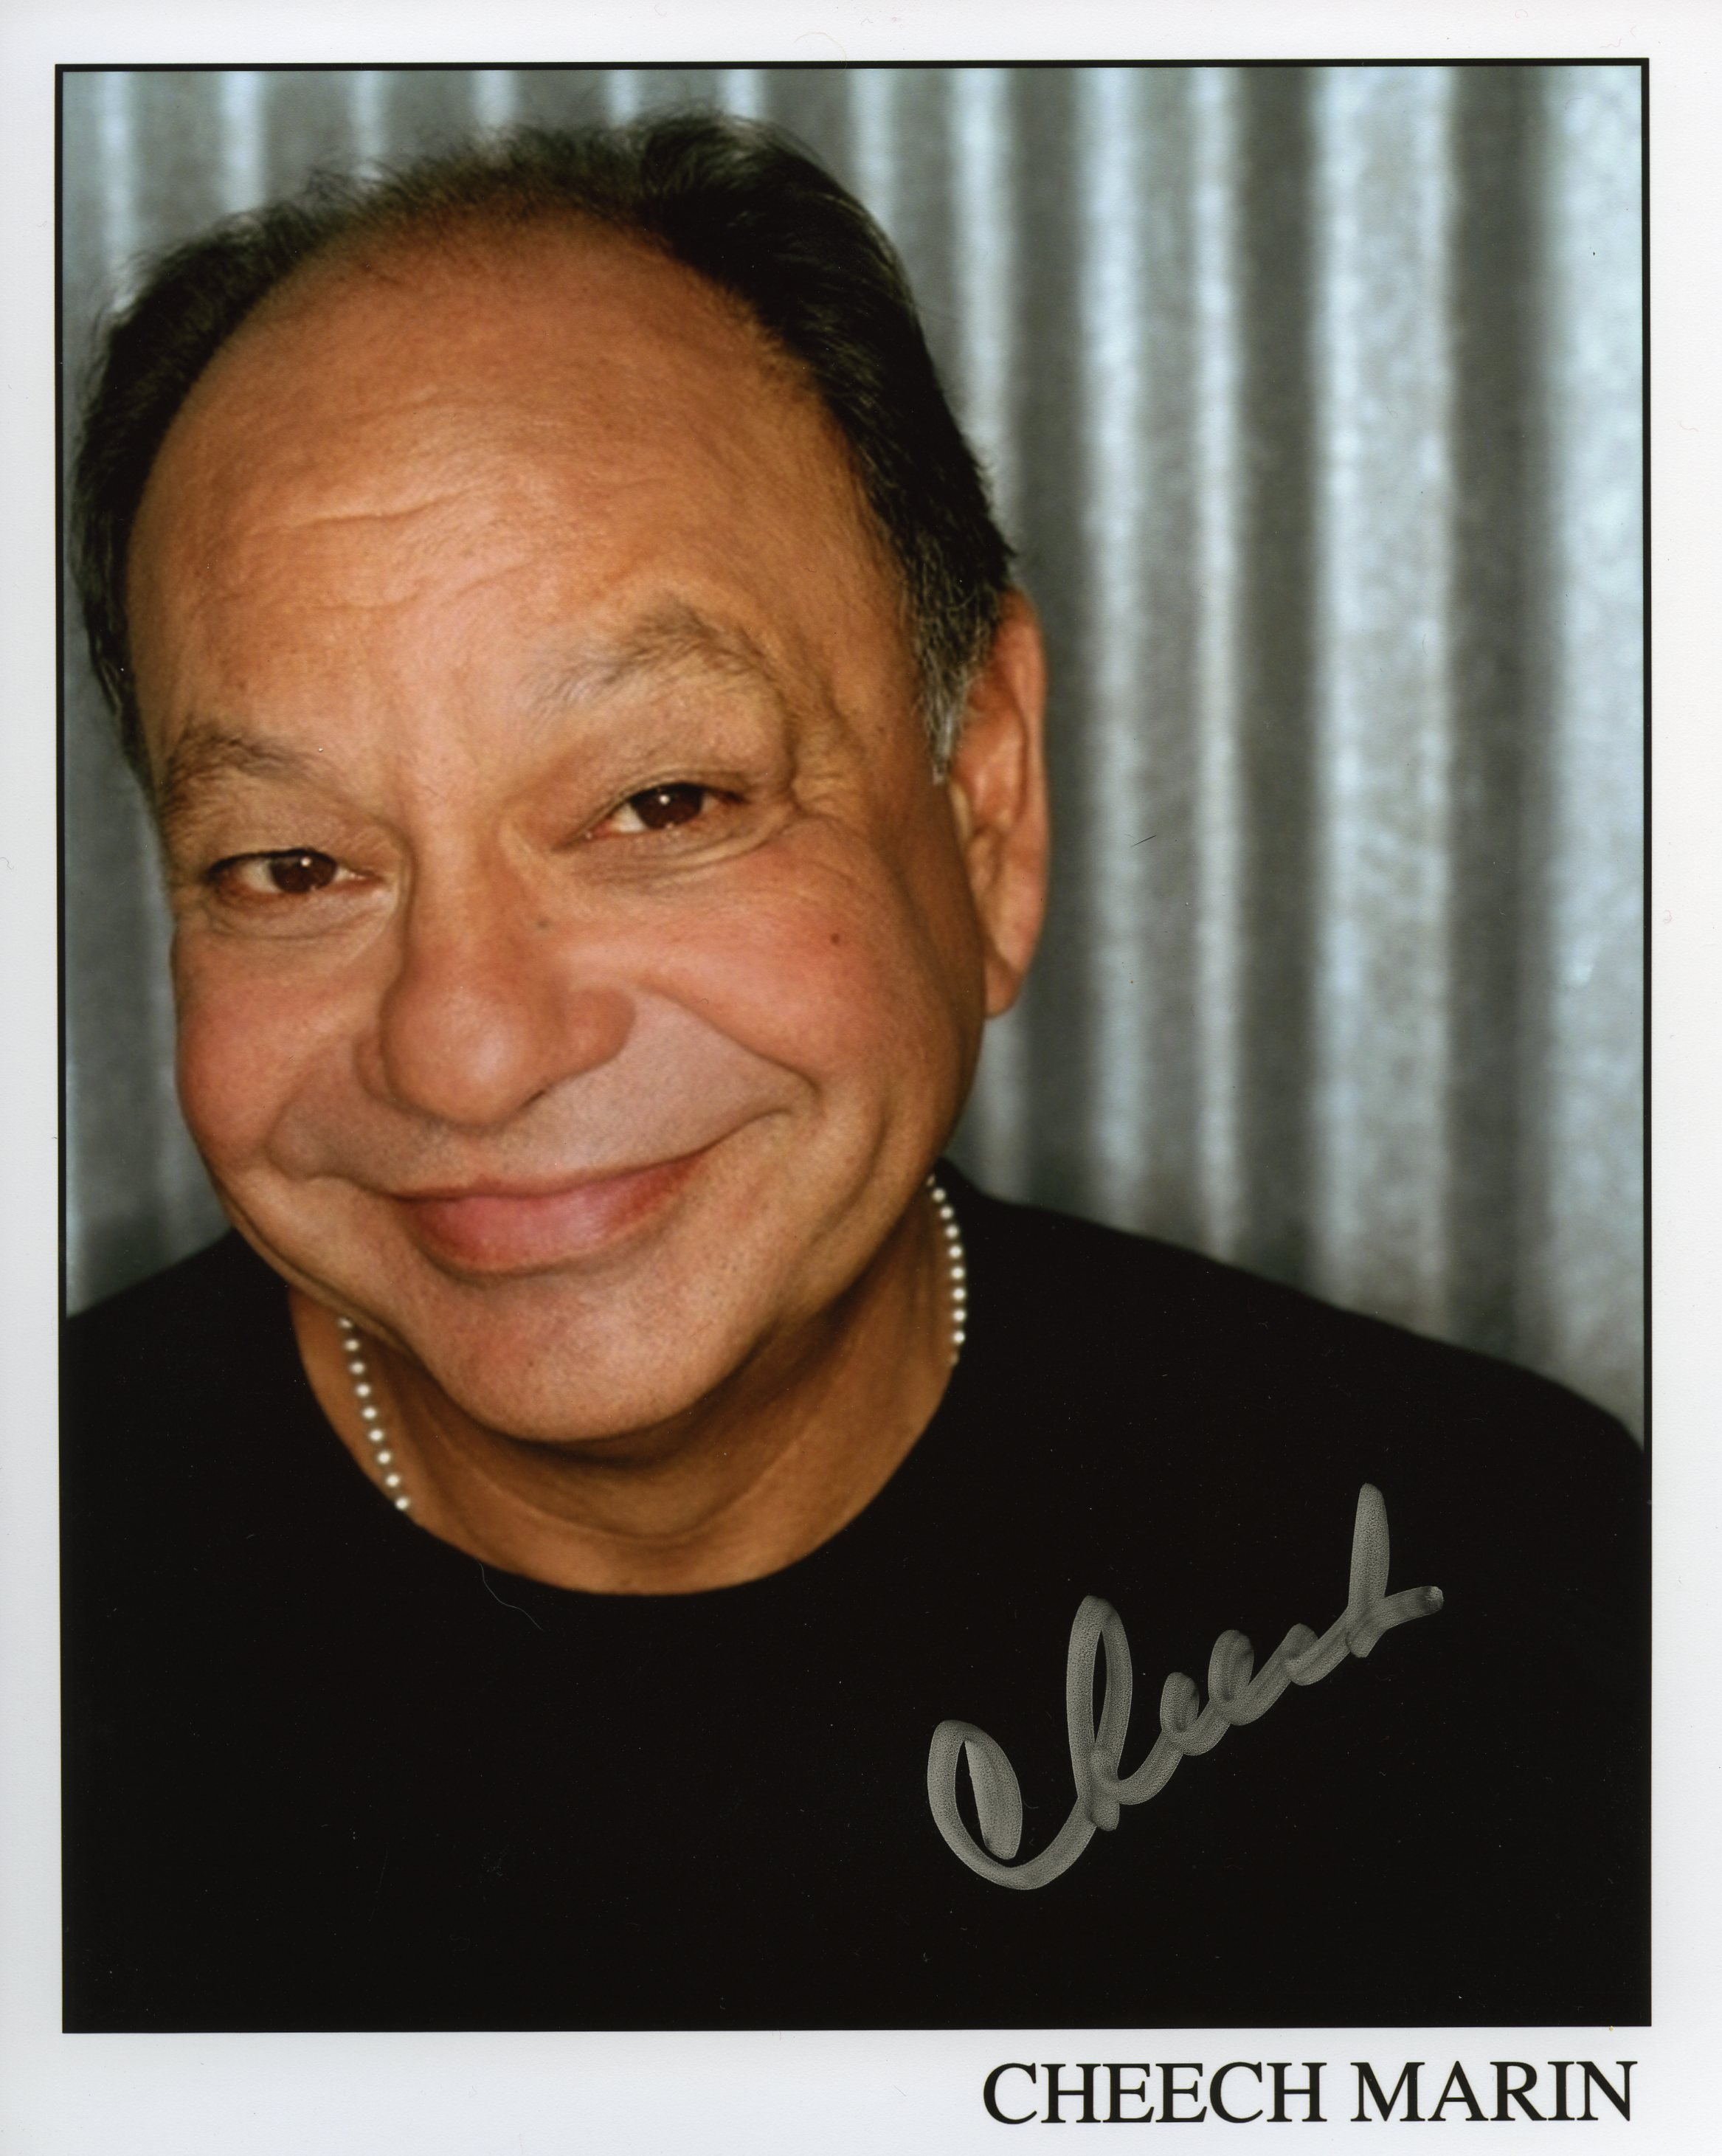 cheech marin instagramcheech marin chicano, cheech marin and tommy chong, cheech marin lost, cheech marin guitar, cheech marin height, cheech marin sauce, cheech marin filmography, cheech marin imdb, cheech marin jeopardy, cheech marin born in east la, cheech marin facebook, cheech marin and don johnson, cheech marin instagram, cheech marin chicano art, cheech marin net worth, cheech marin died, cheech marin movies, cheech marin wife, cheech marin biography, cheech marin net worth 2015